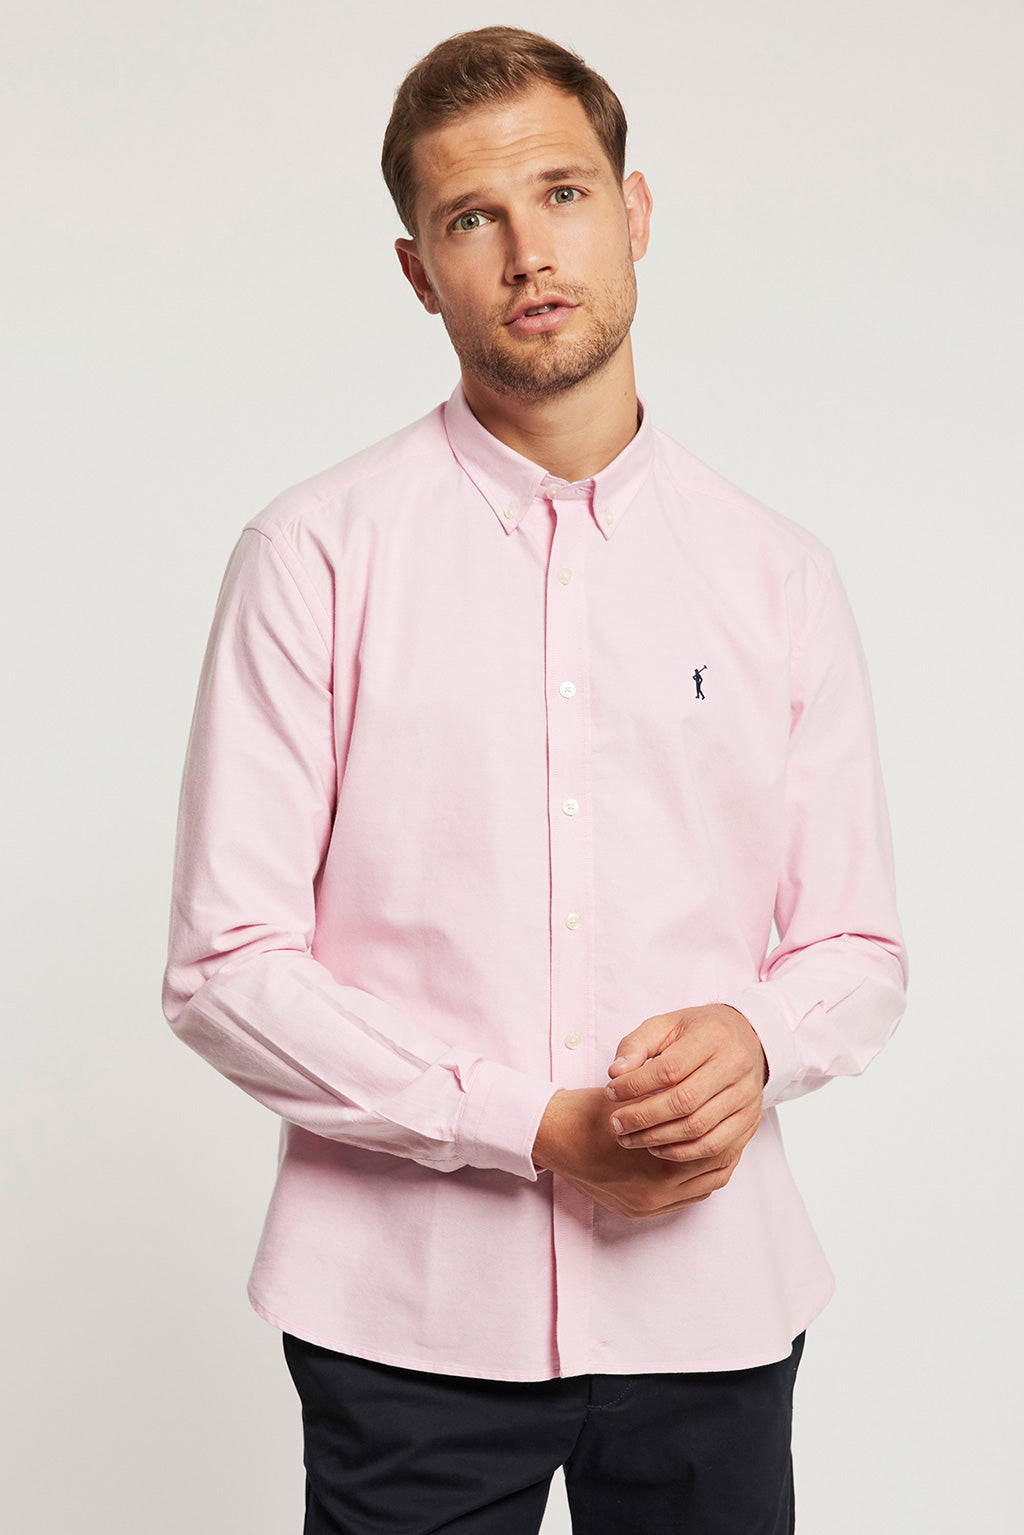 Pink Oxford shirt with embroidered logo